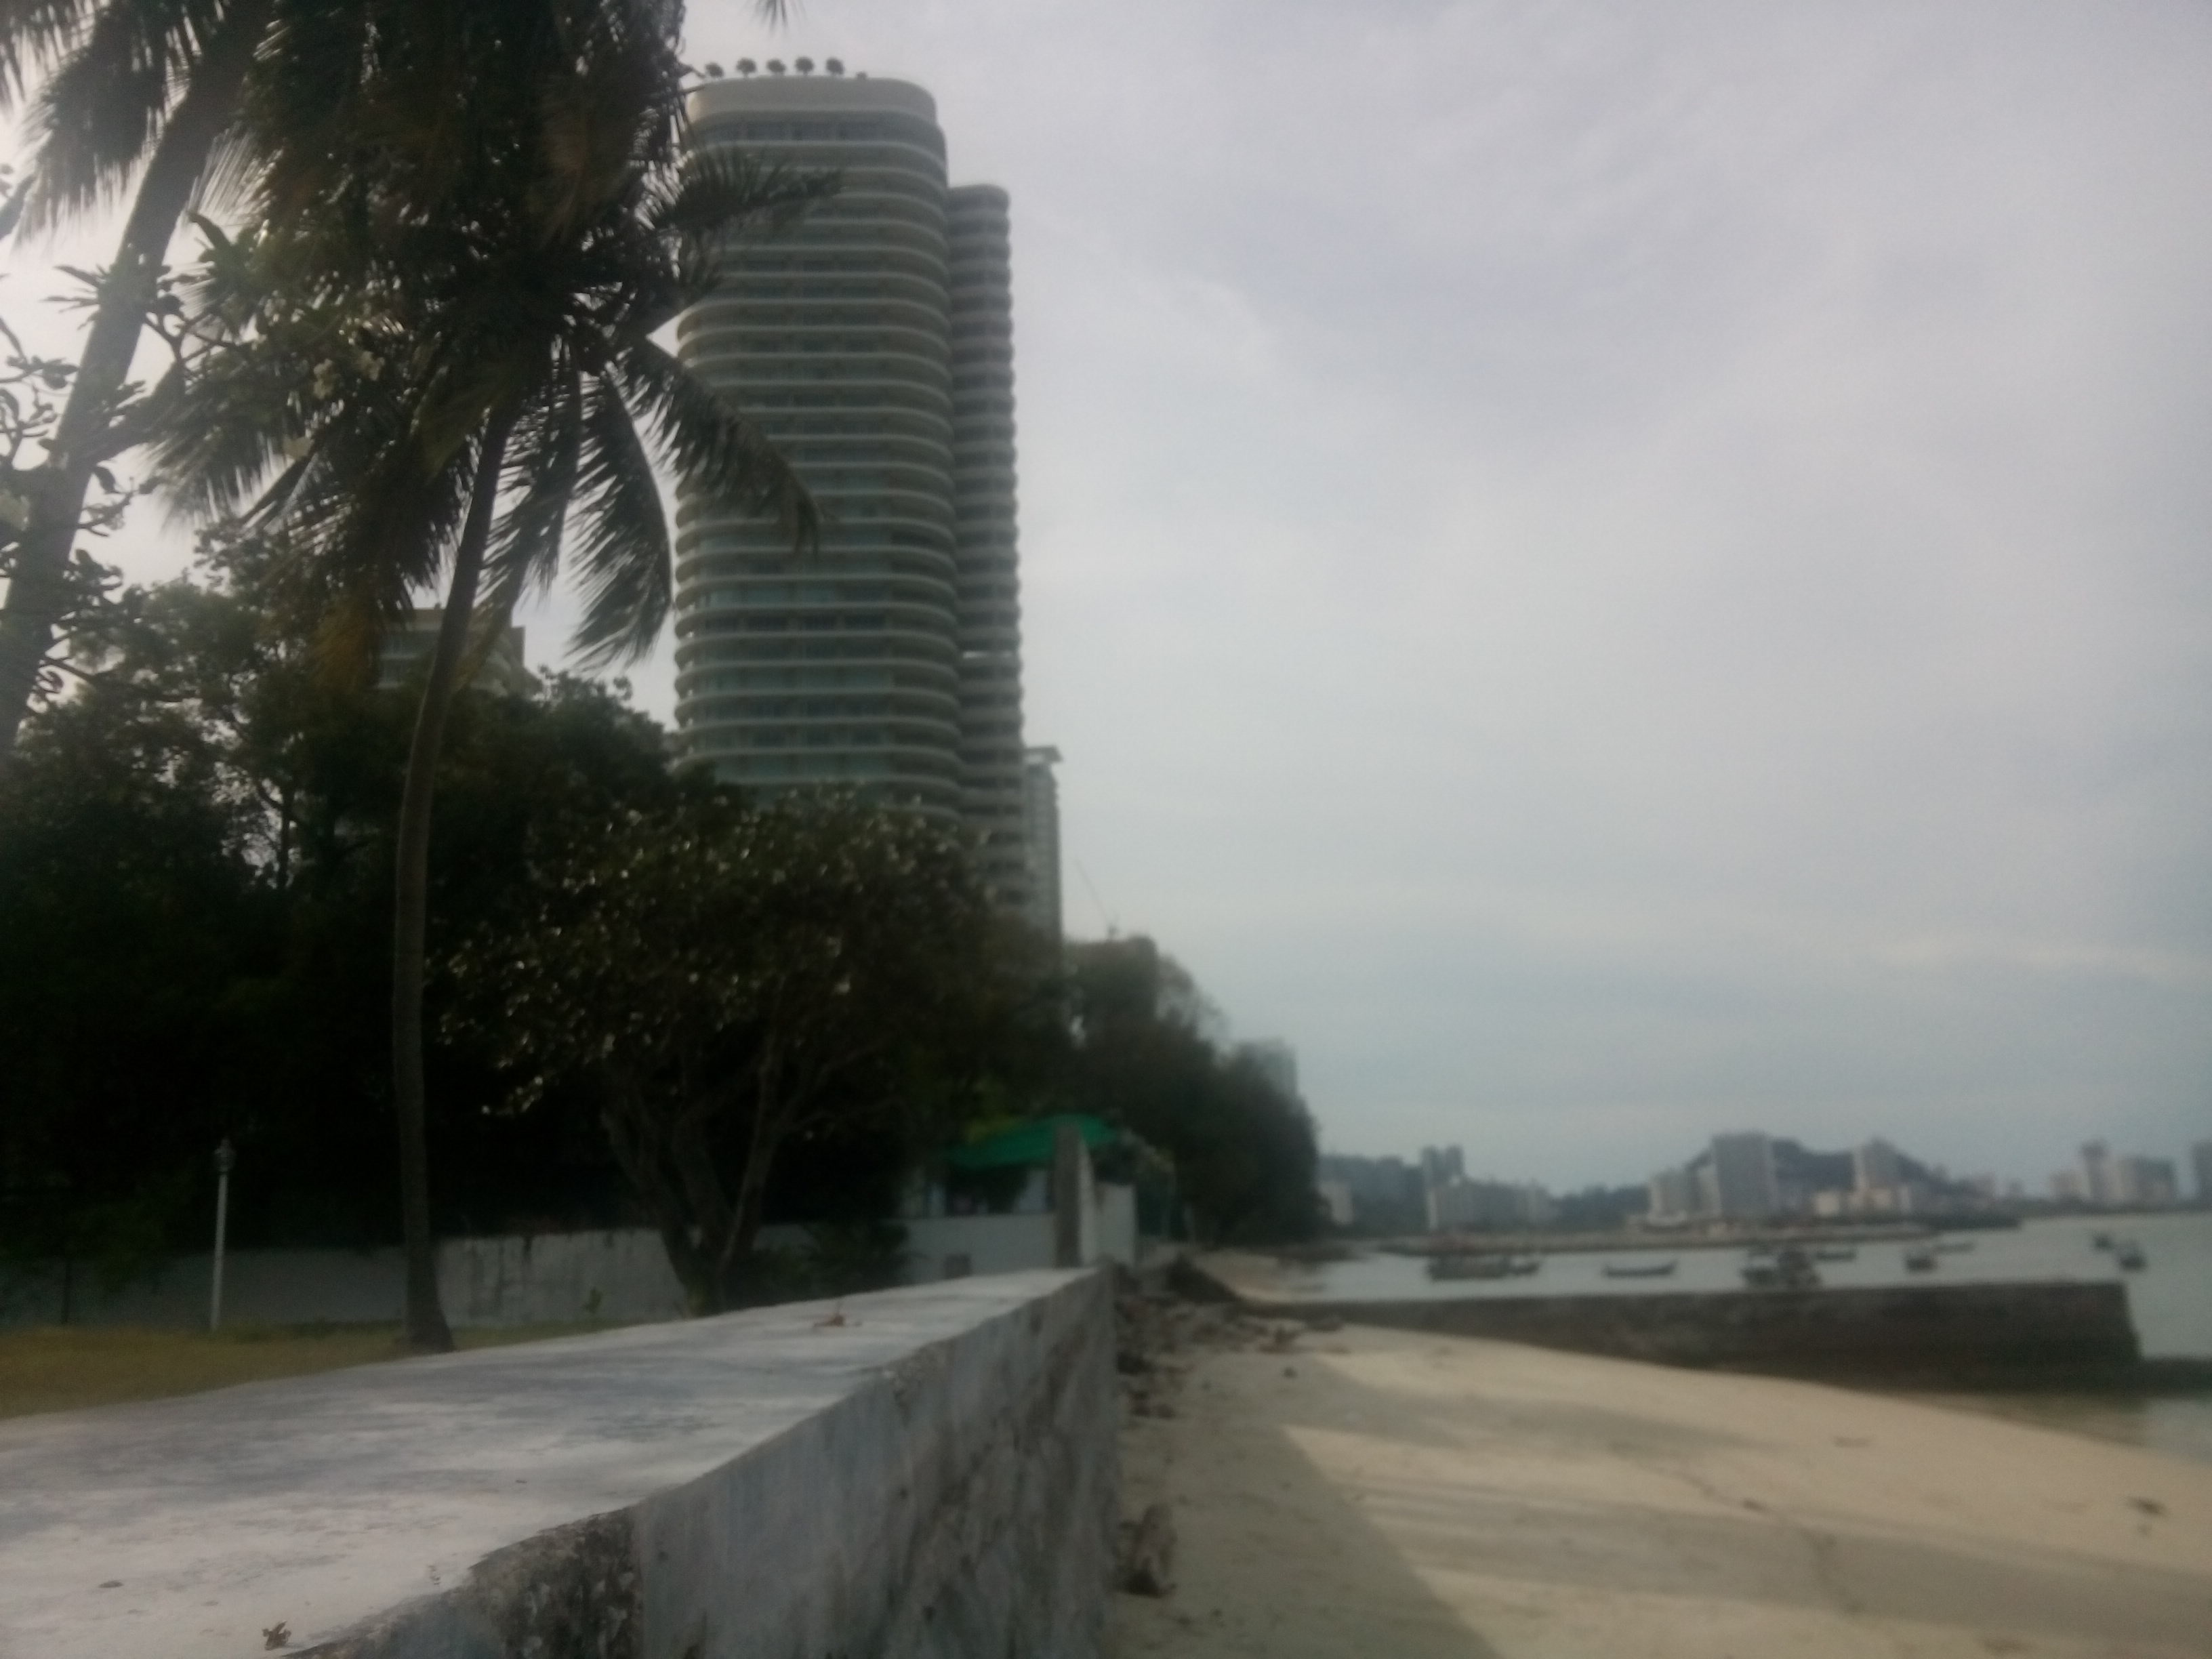 A sandy beach with palm tree in the foreground and tall building in the distance